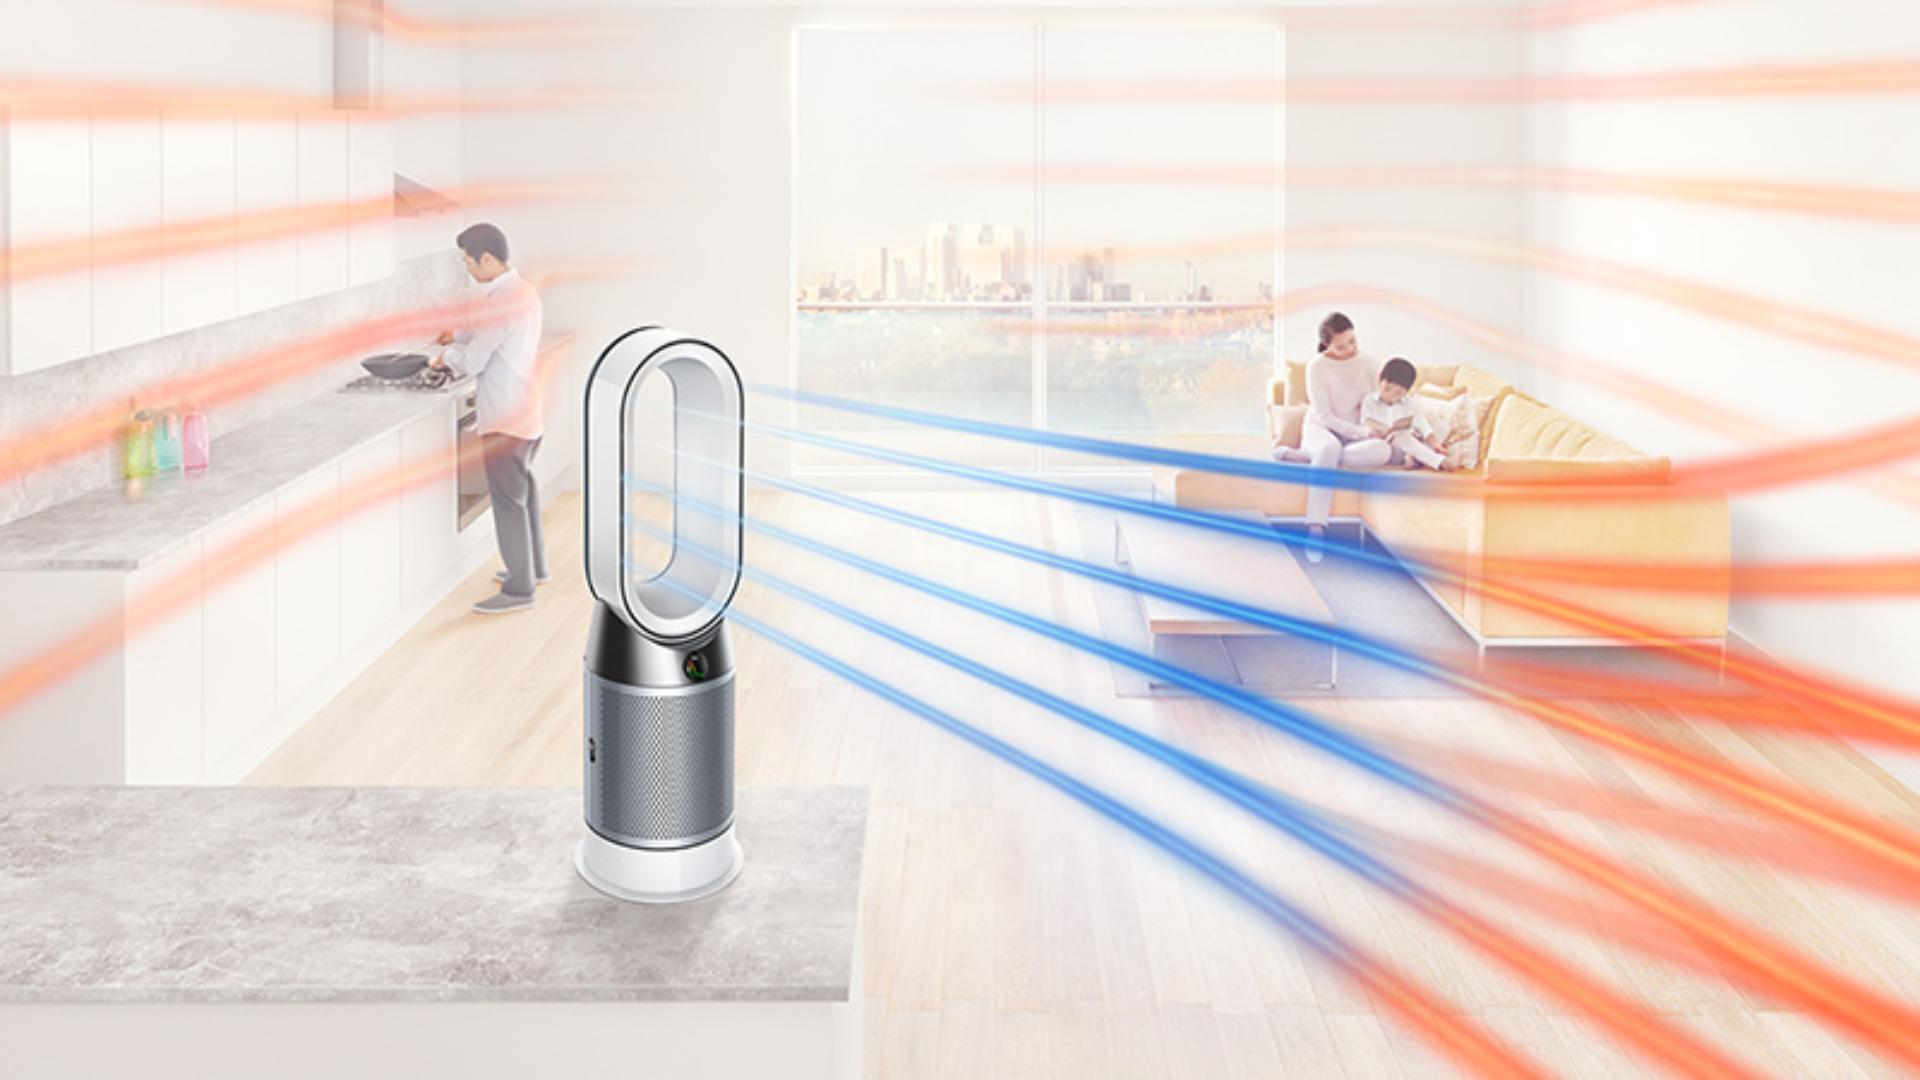 Dyson purifying fan circularing air around the room